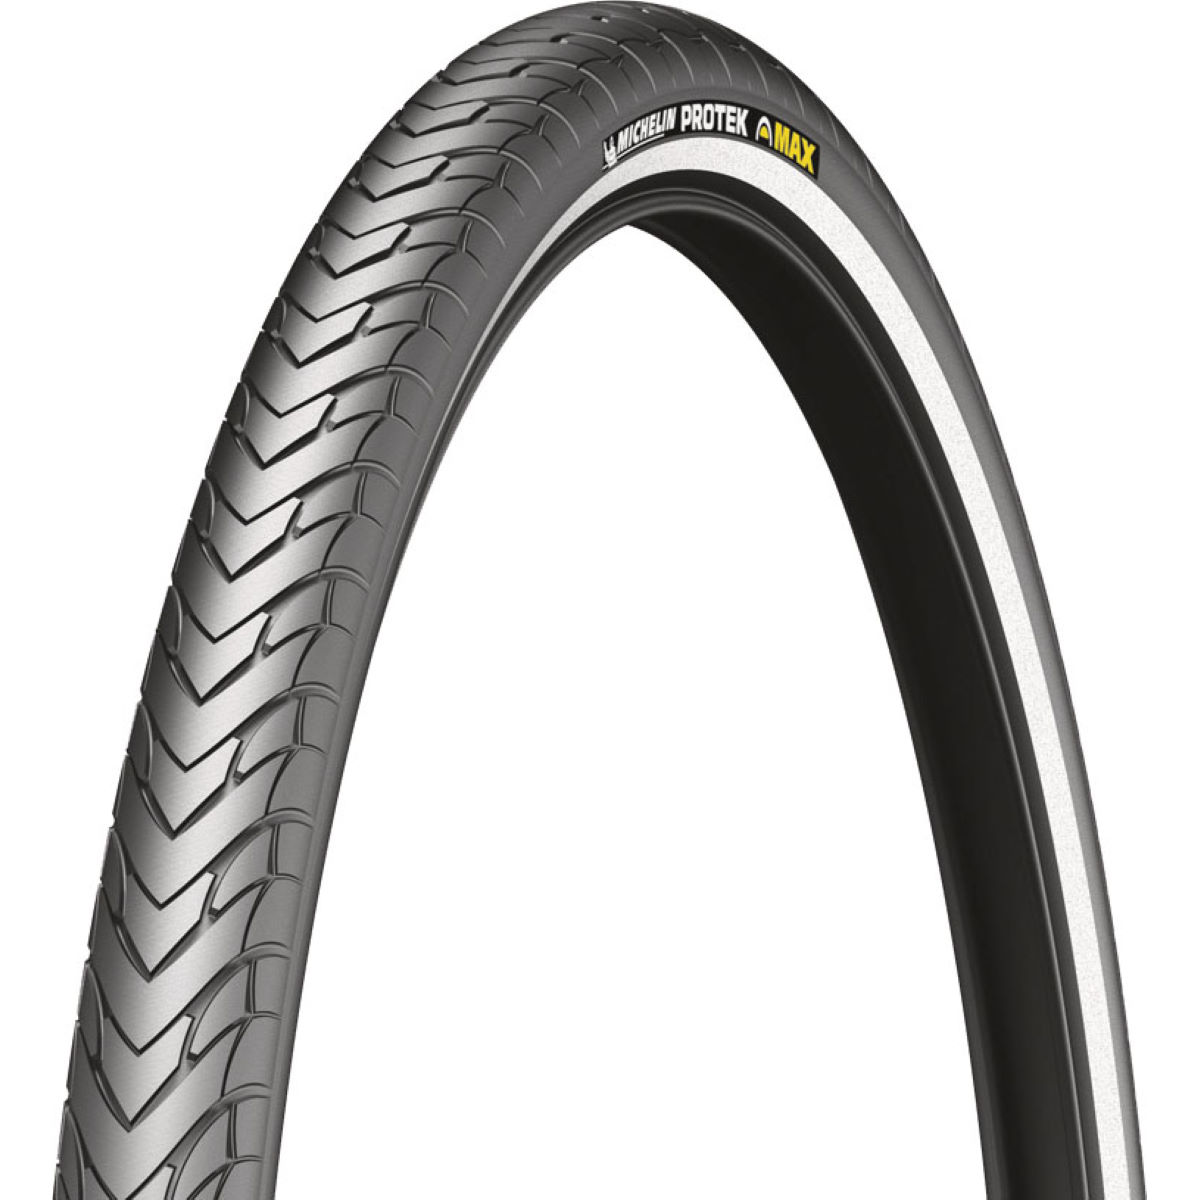 MICHELIN Michelin ProTek Max City Road Tyre   Tyres